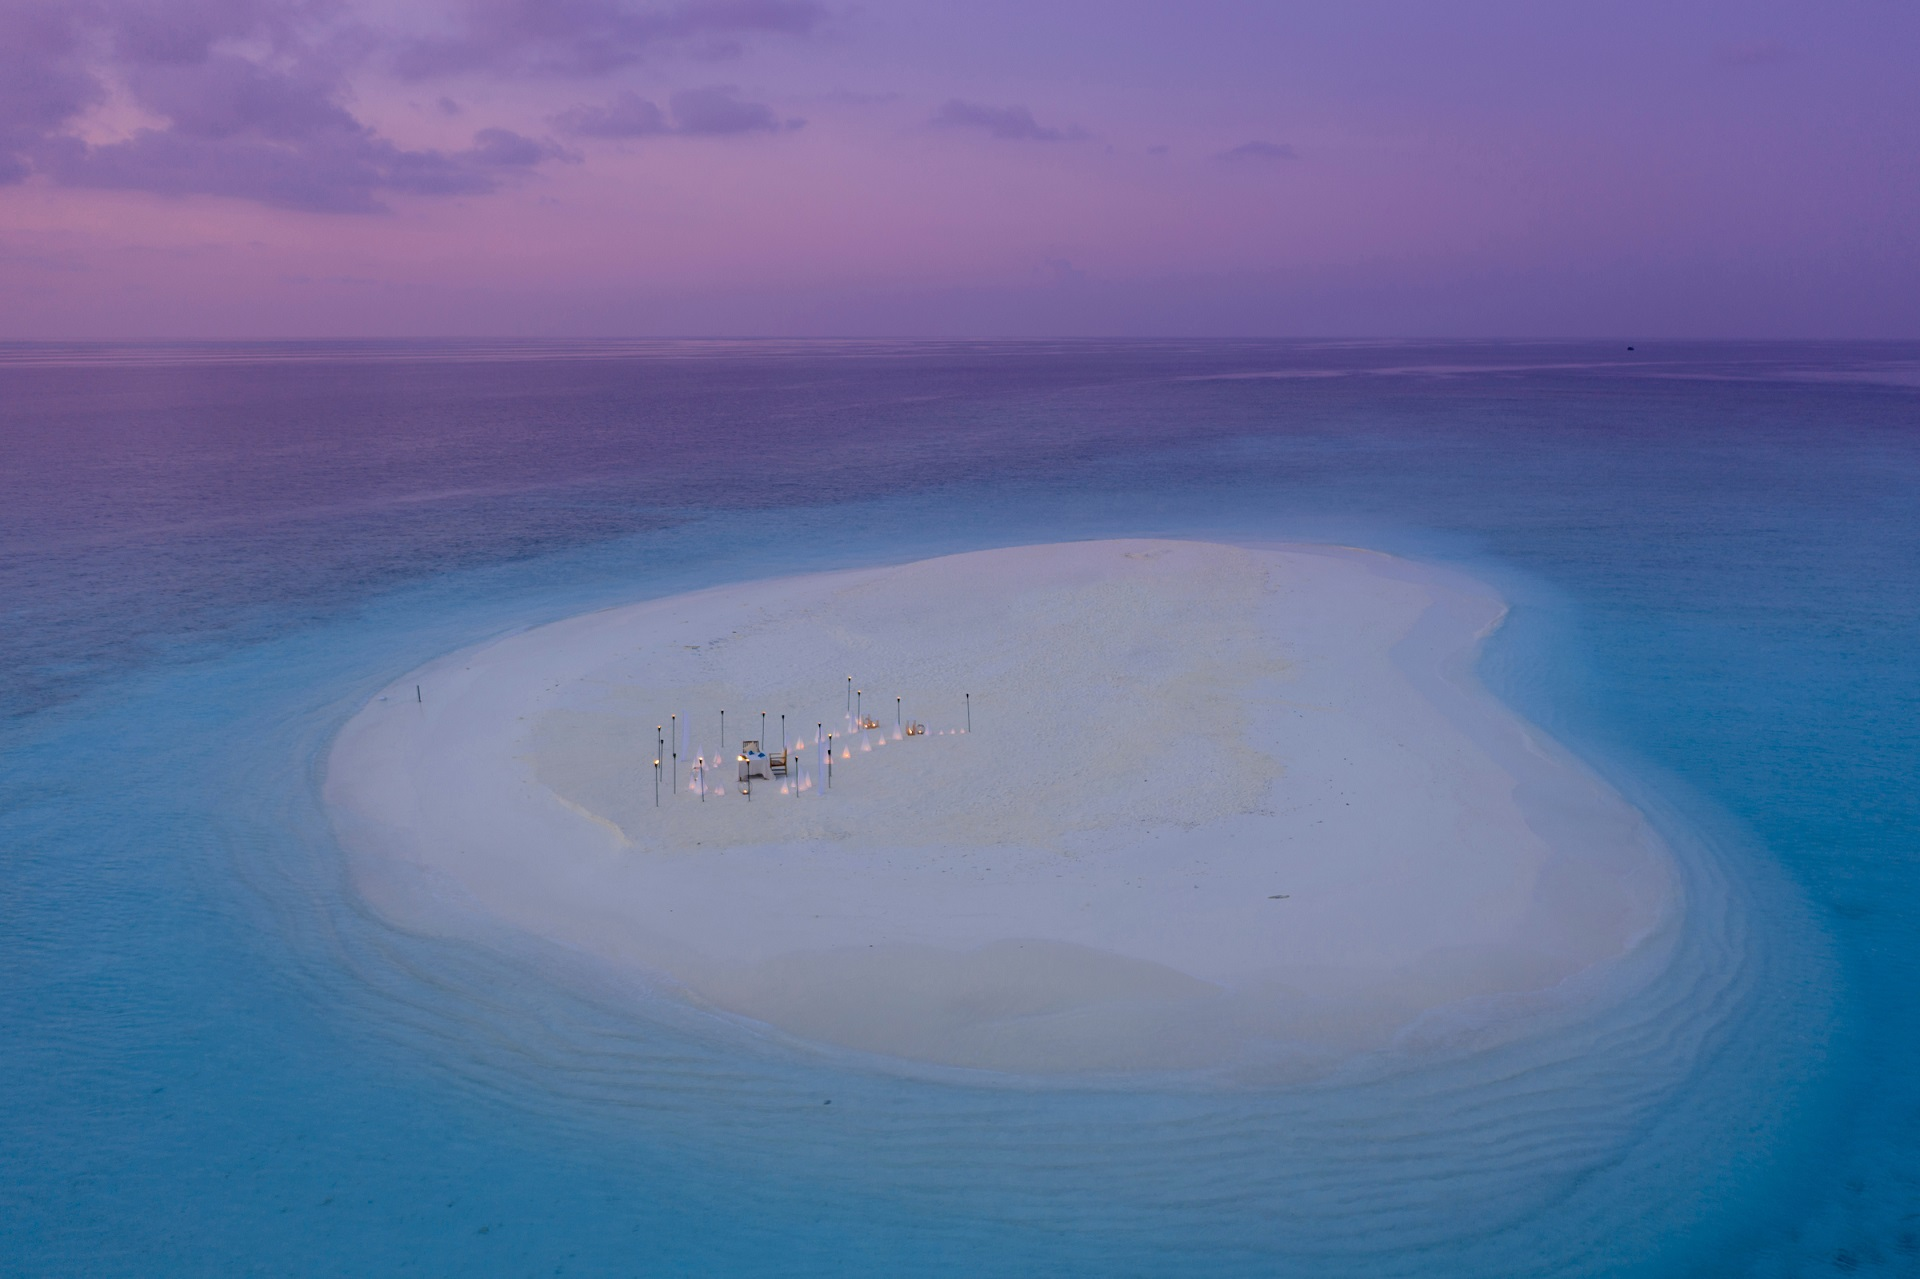 Dining in the Maldives with panoramic views